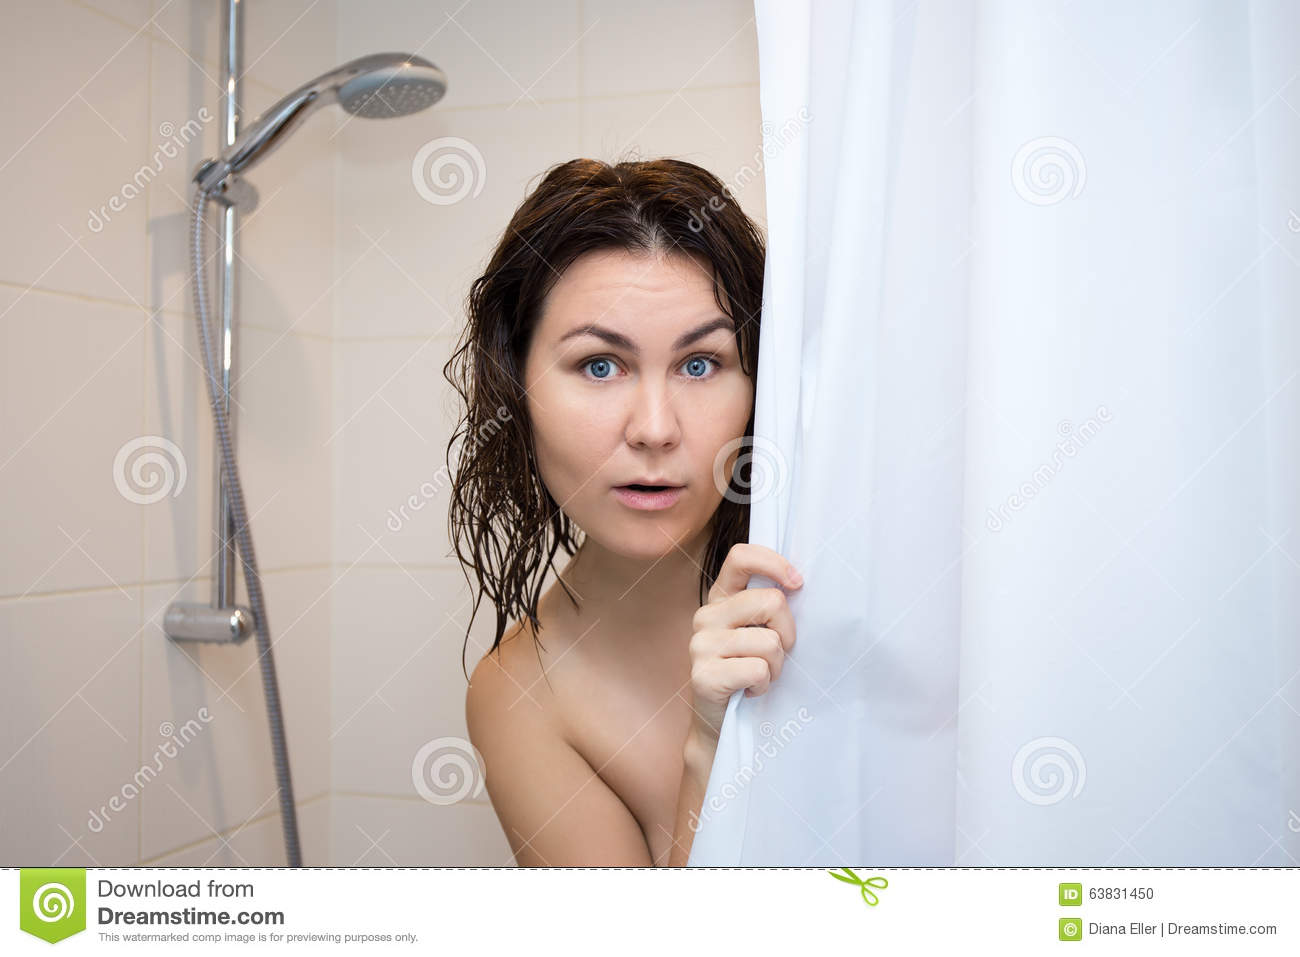 Opinion nude behind shower curtain remarkable